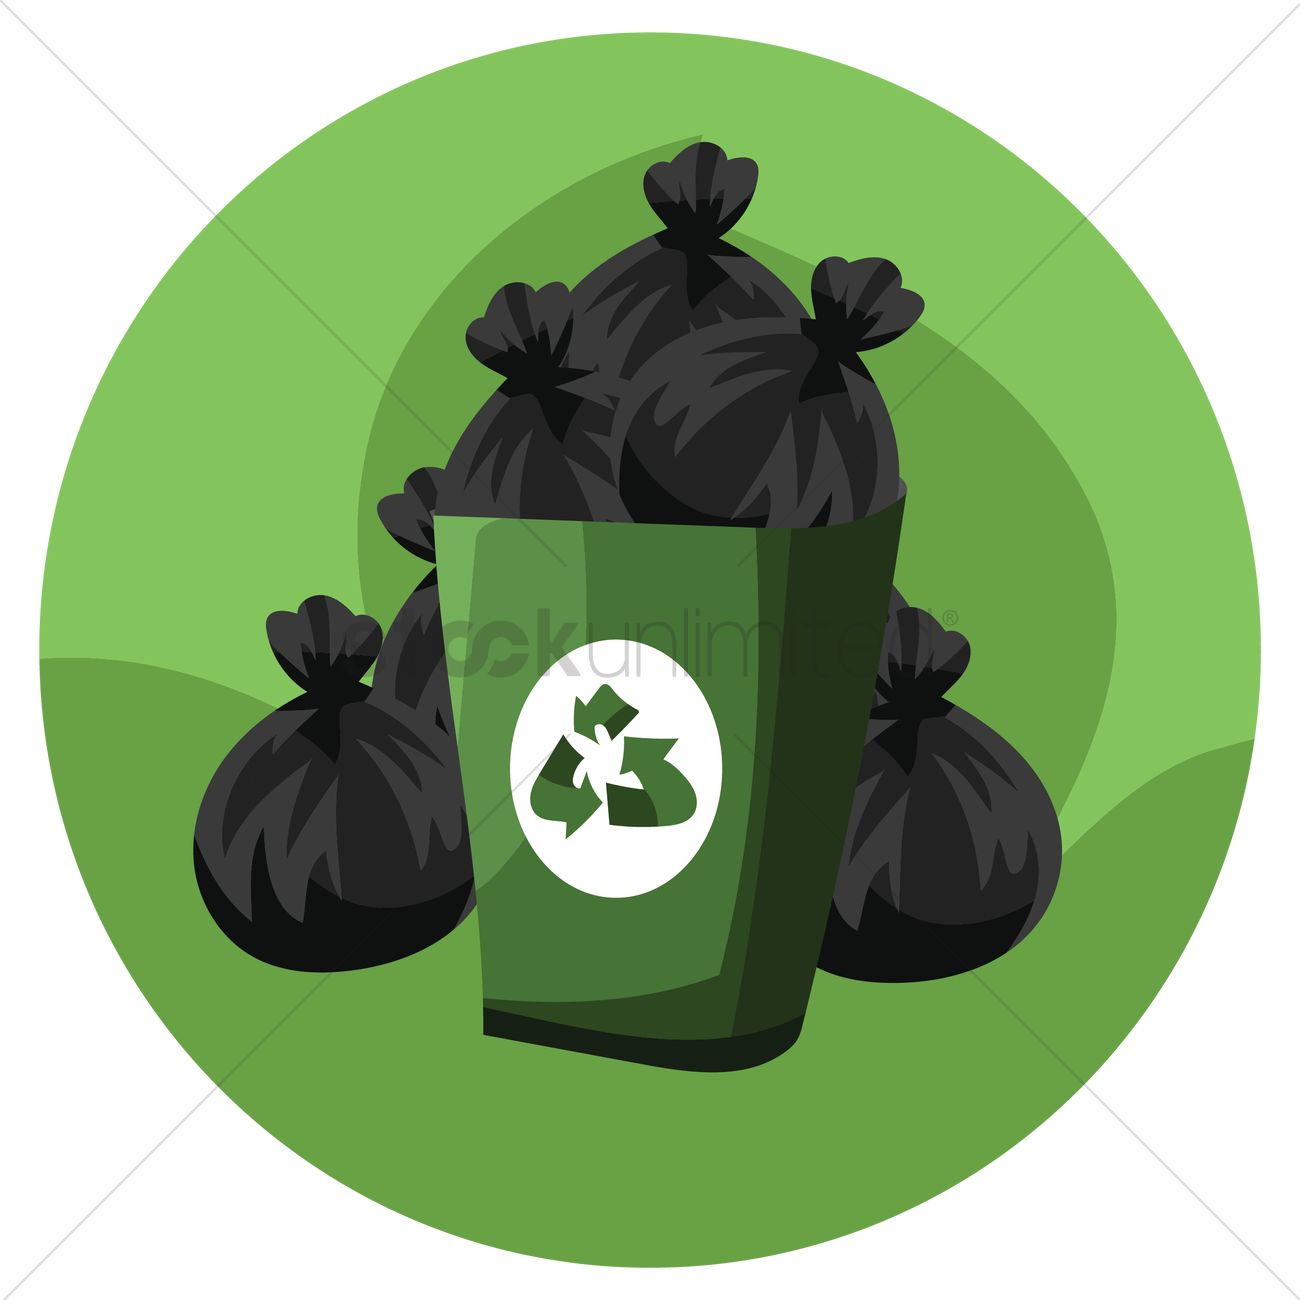 Recycle Bin With Garbage Bags Vector Graphic